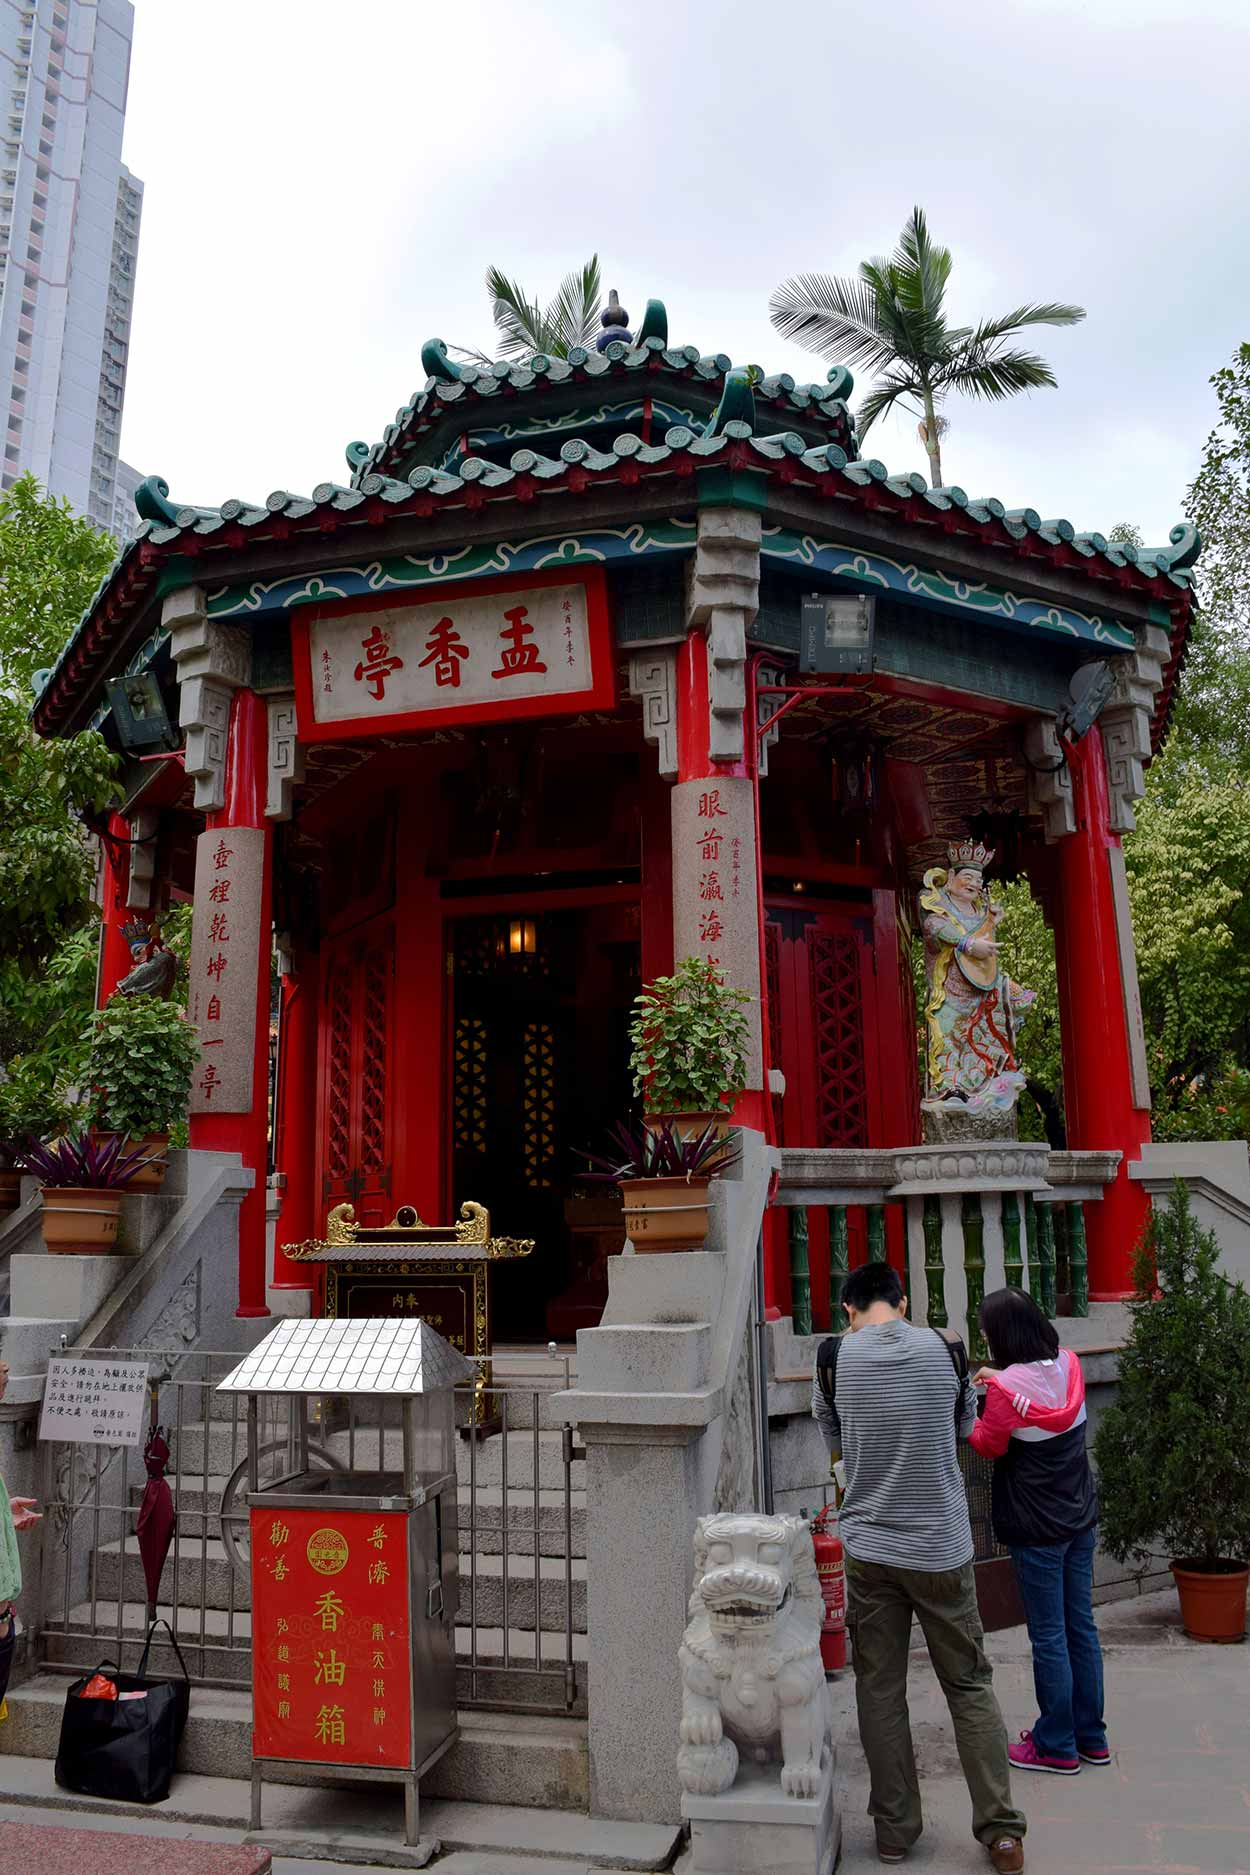 Yue Heung Shrine, Sik Sik Yuen Wong Tai Sin Temple, Hong Kong, China